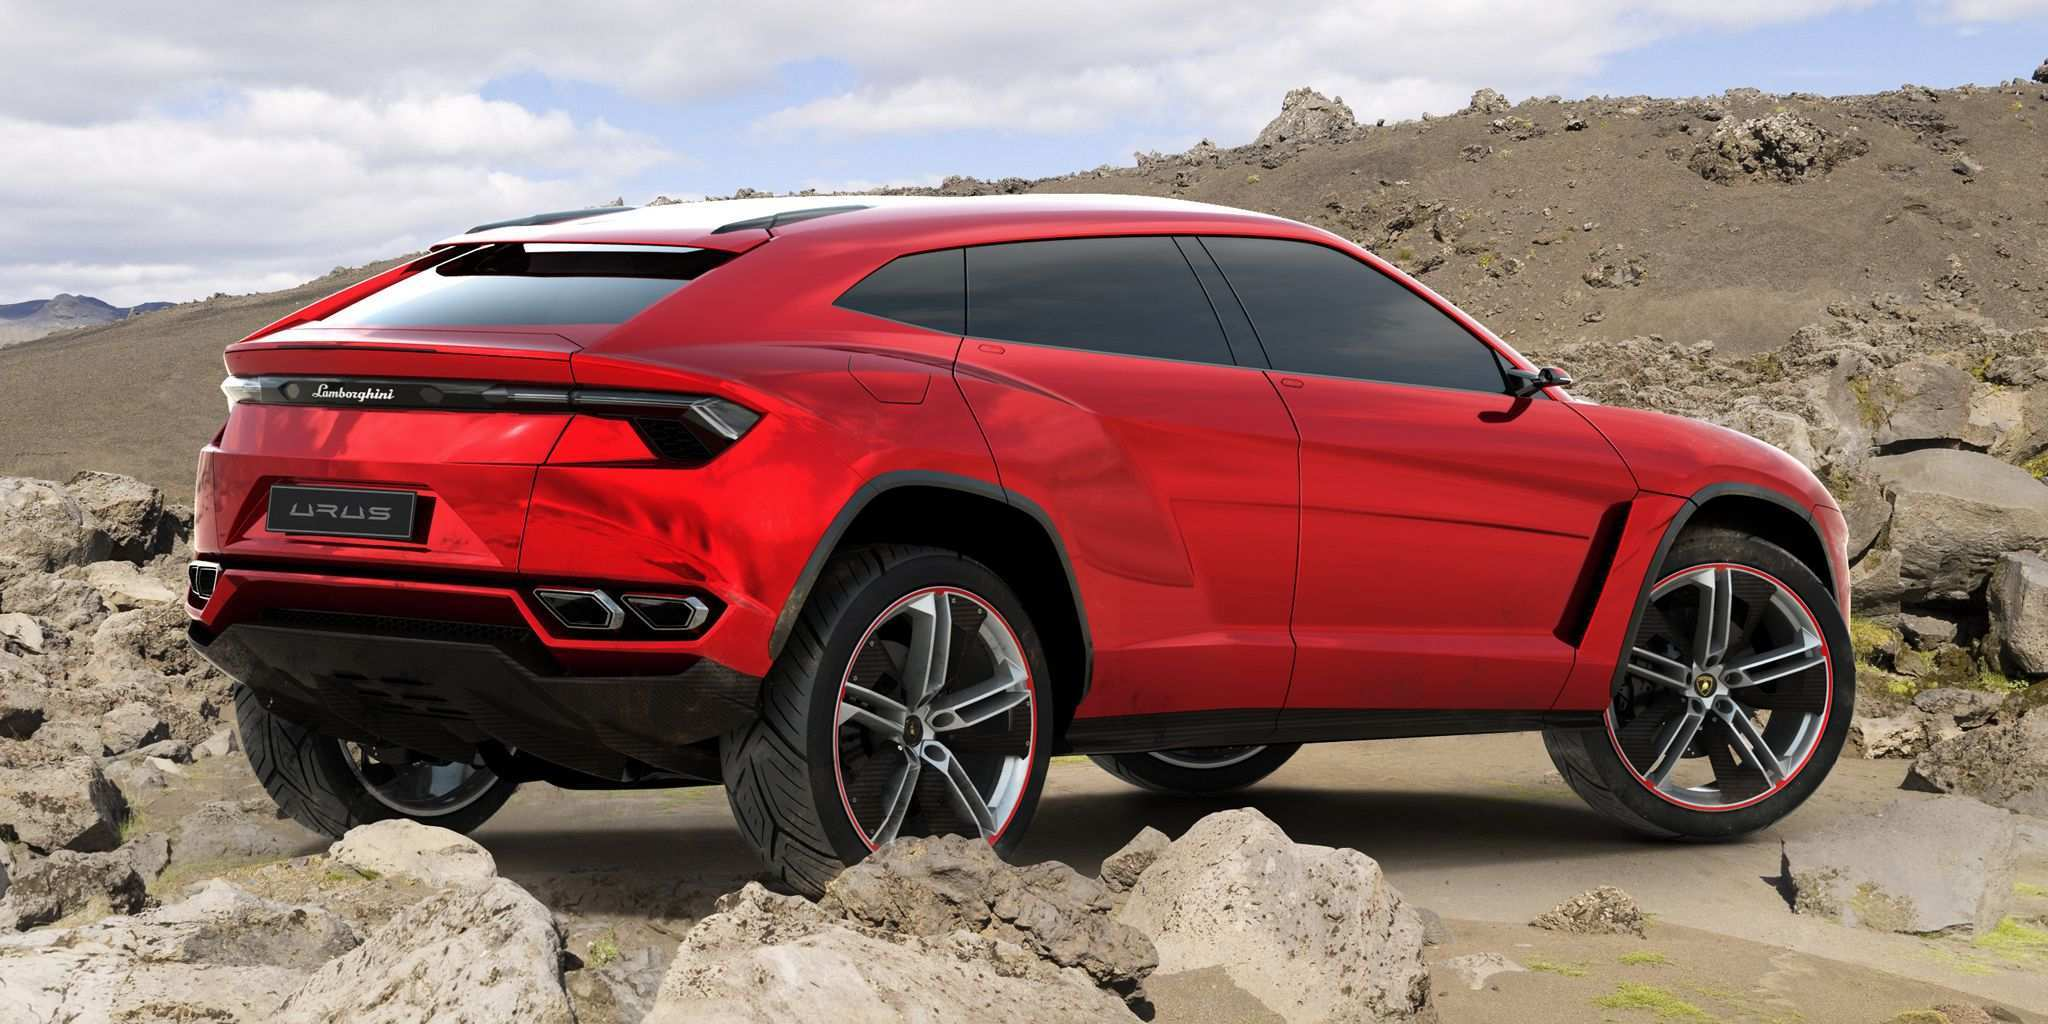 97 Great 2019 Lamborghini Suv Price Price by 2019 Lamborghini Suv Price